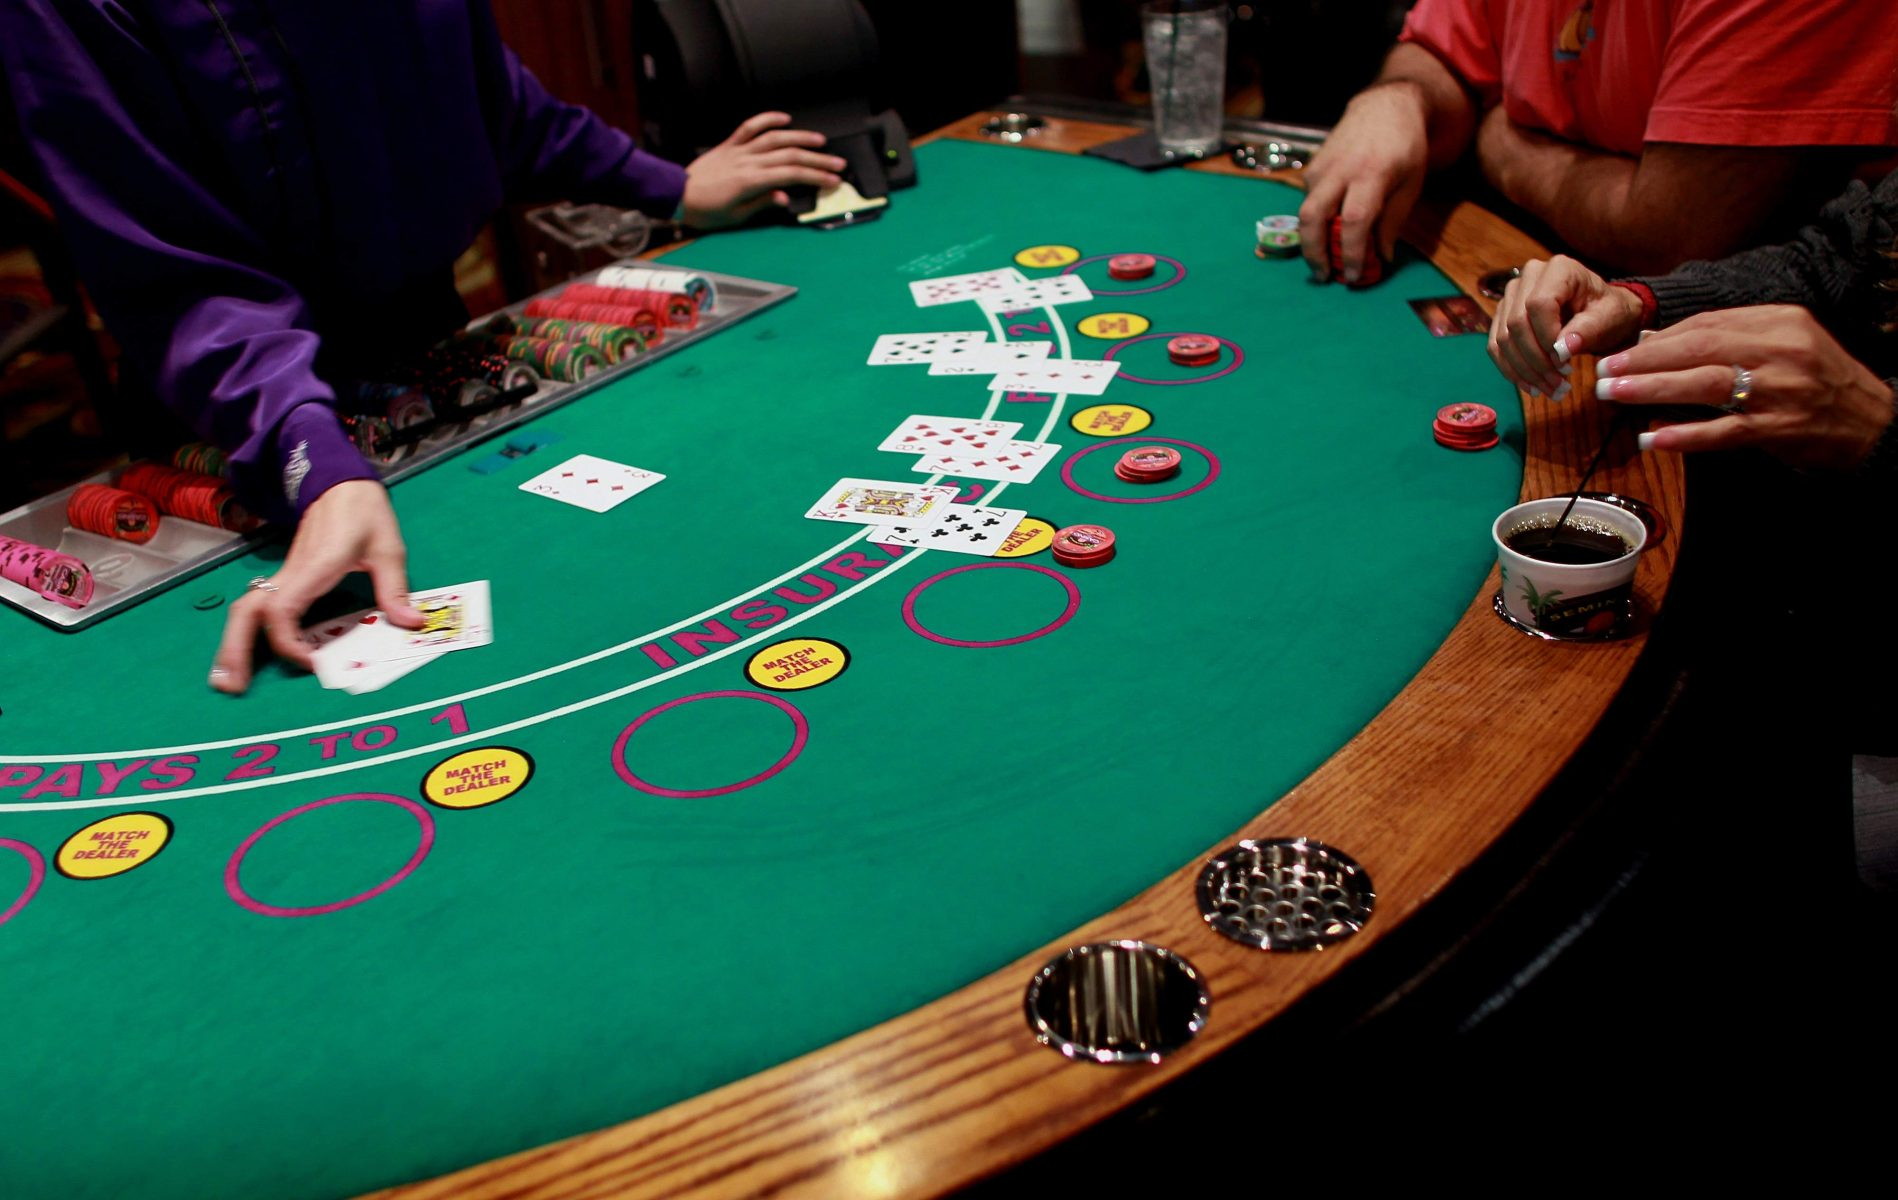 Five Best Tips You Should Follow While Playing Online Casino Games